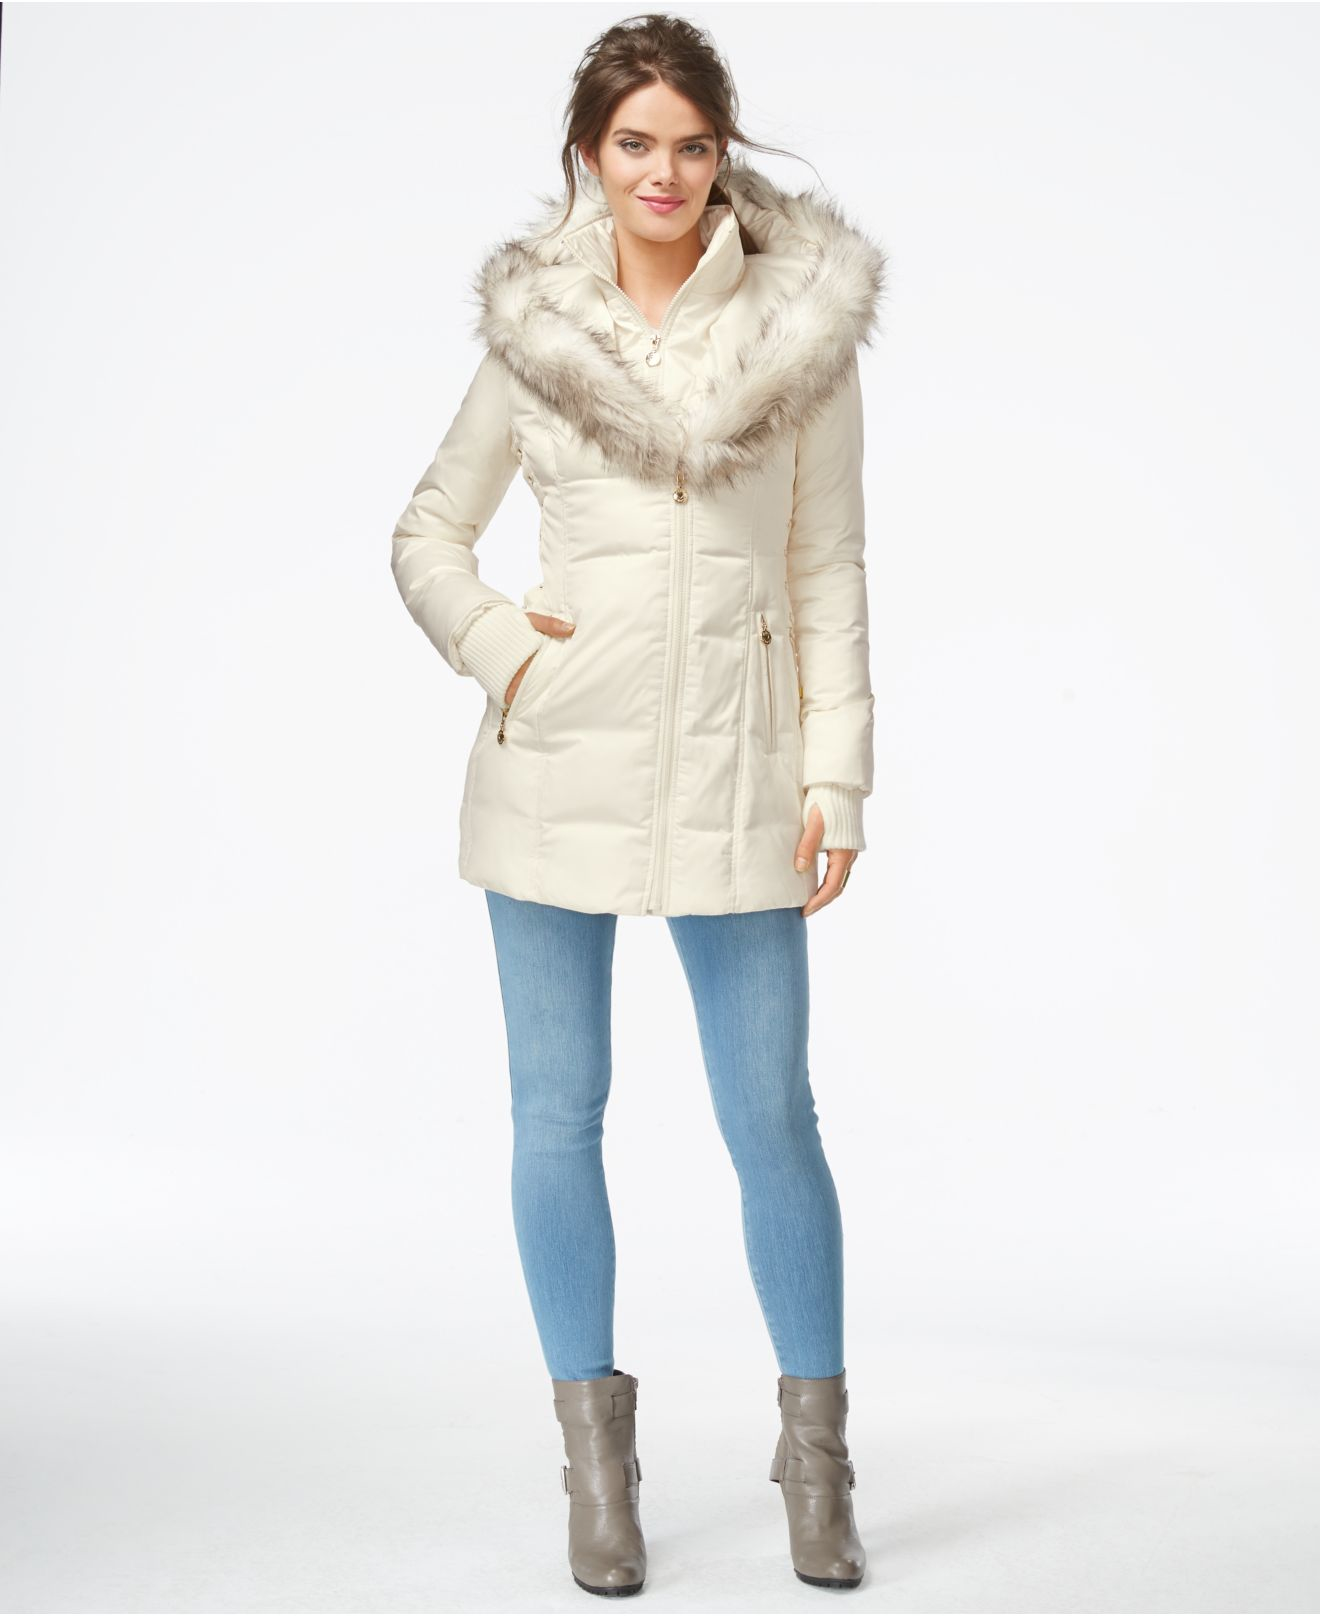 Krush Zip Front Puffer Coat With Faux Fur Hood. Layer on sleek, cozy and comfortable style with this ultra chic puffer coat. Punctuated by a faux fur hood for a decidedly luxe touch, this.